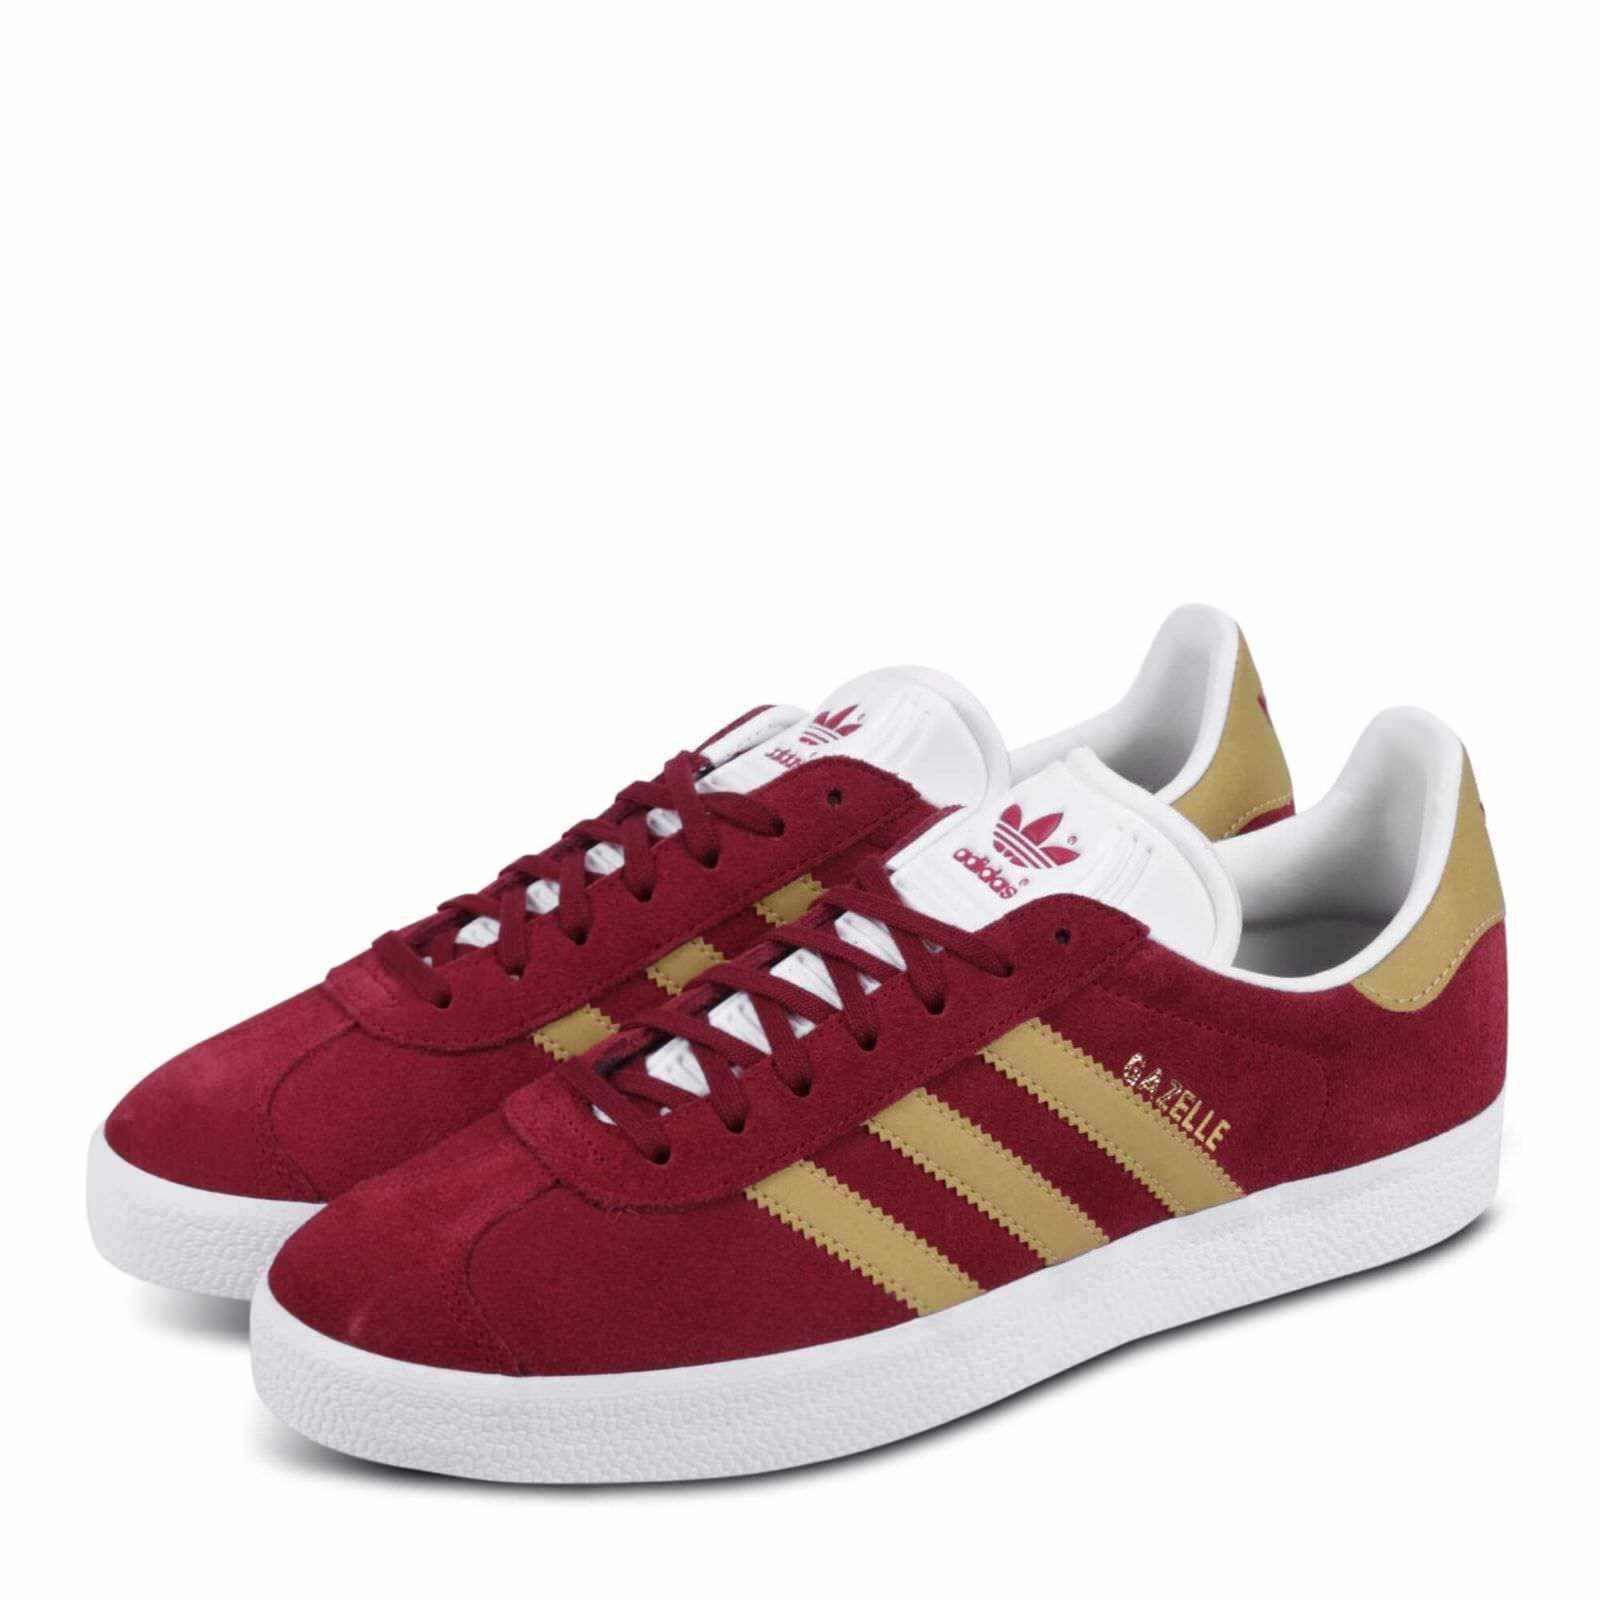 Neuf Adidas Gazelle Daim Bordeaux CP9706 Baskets Taille UK 5